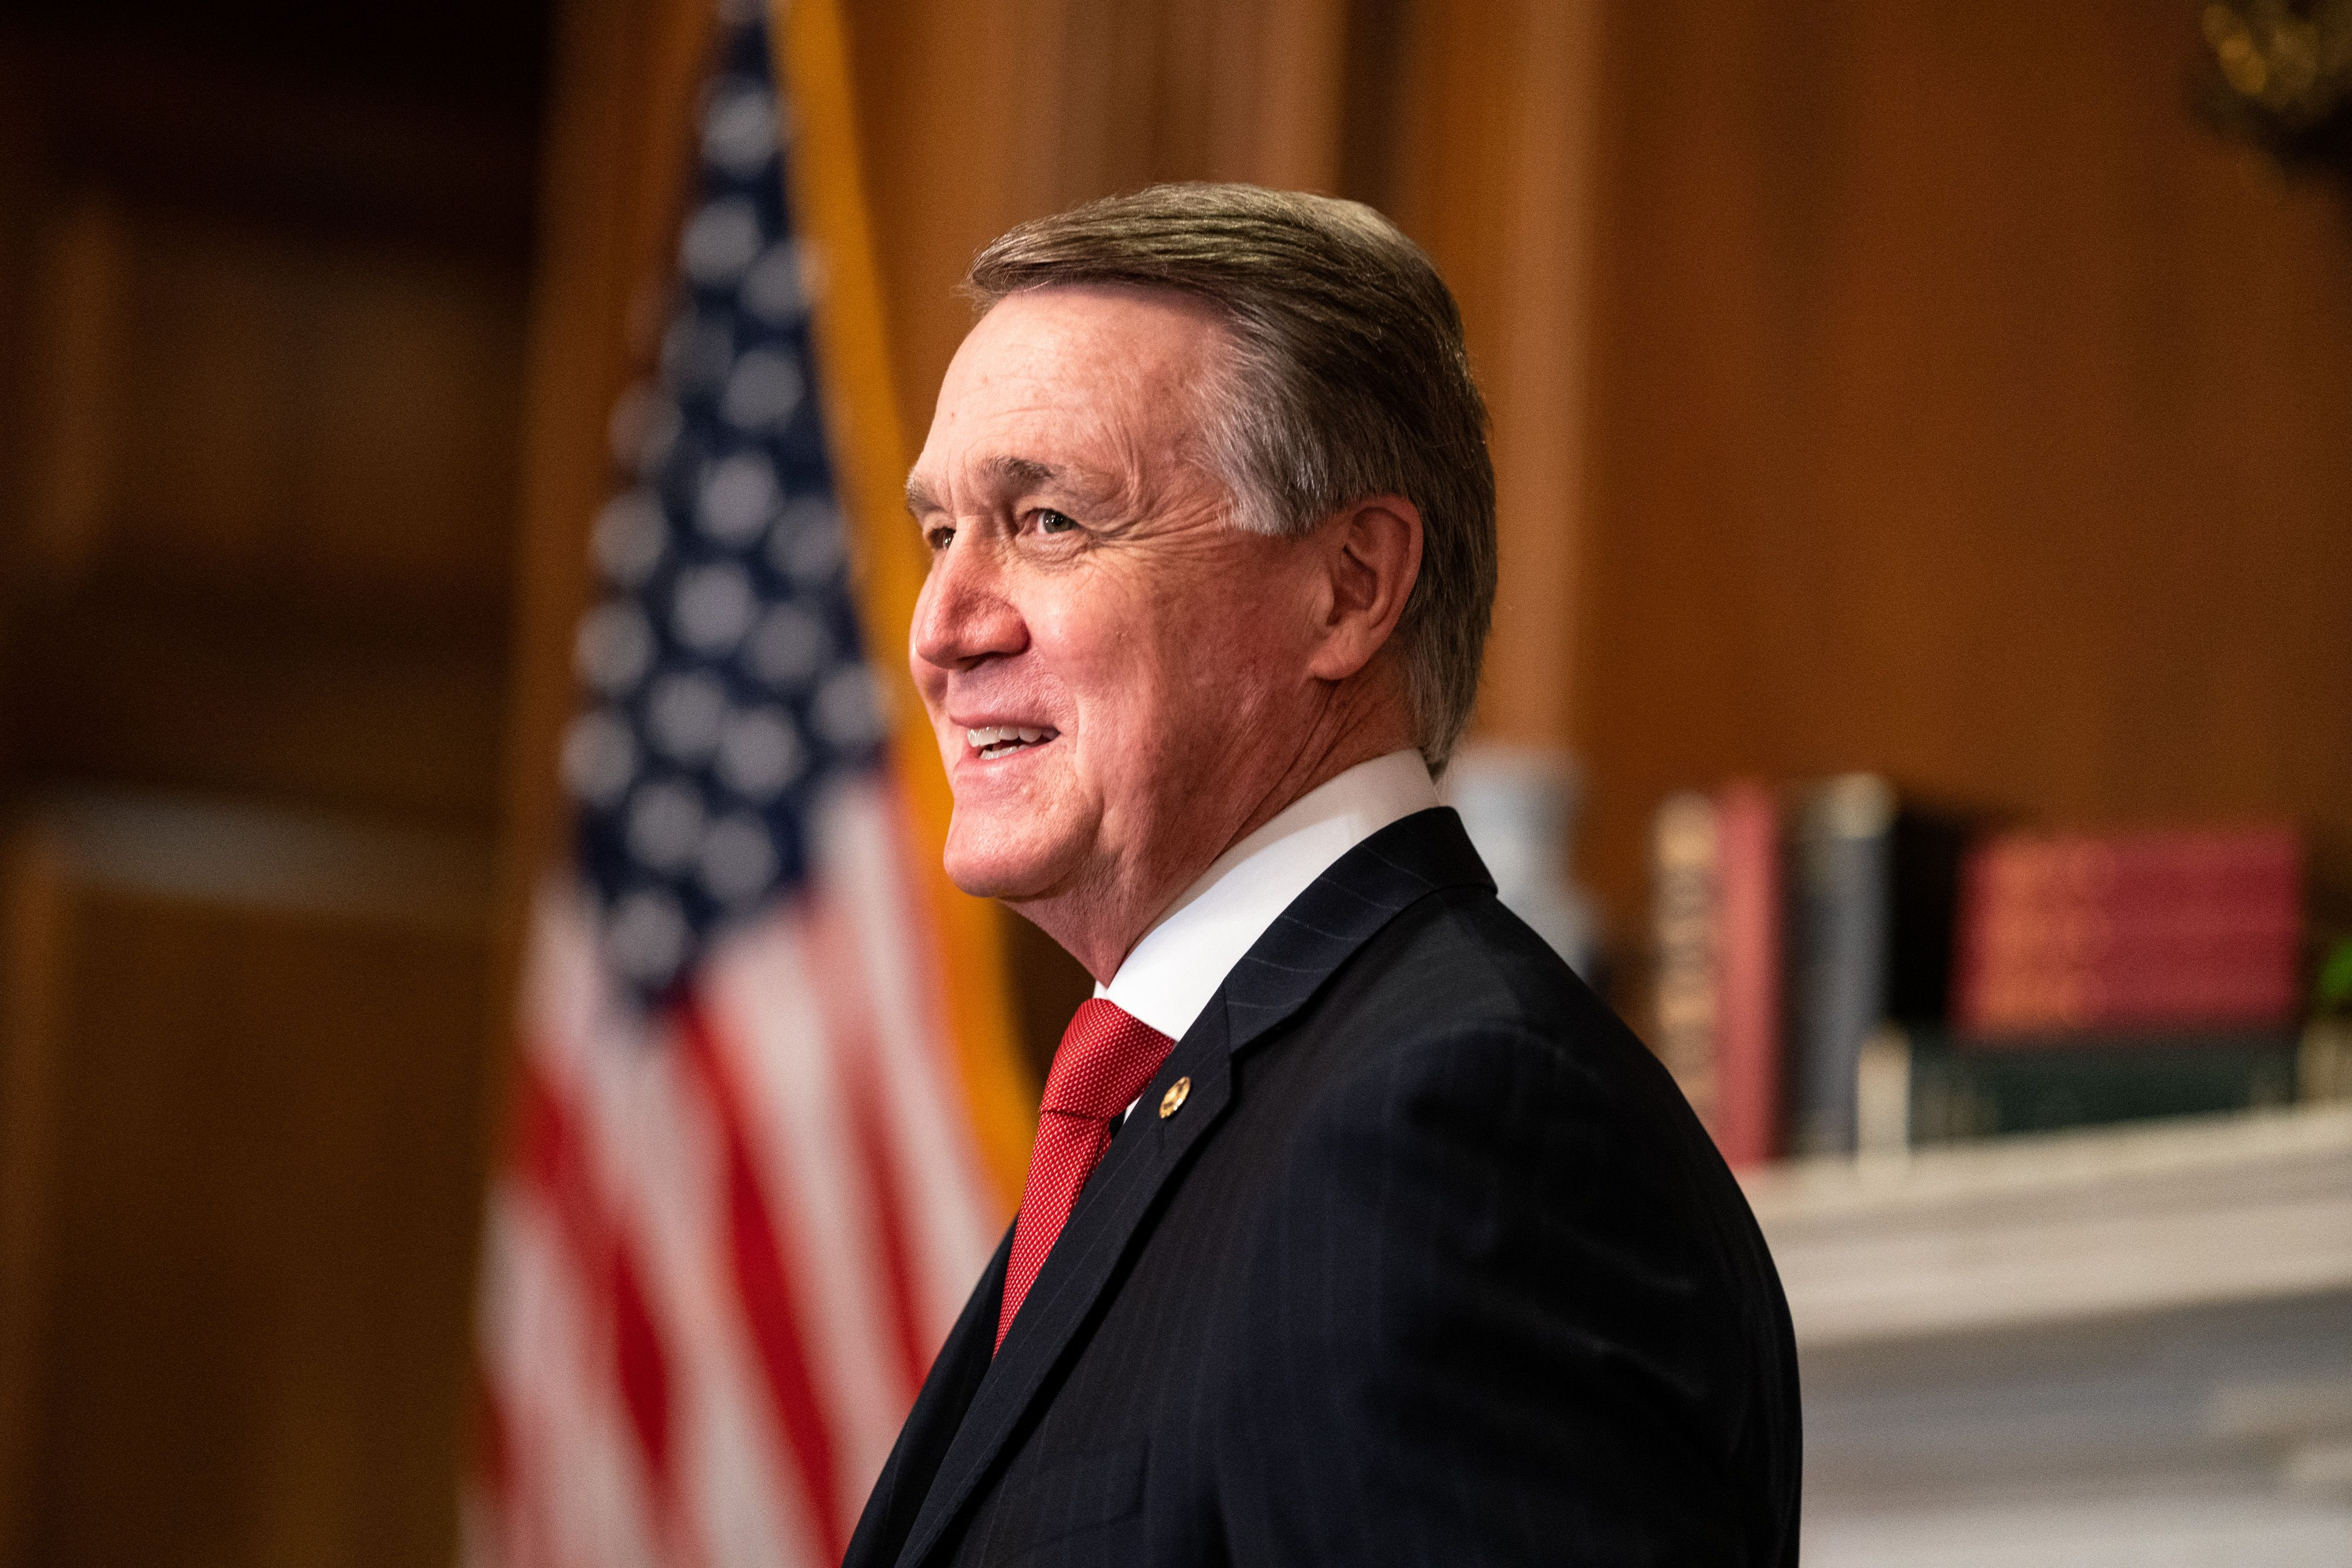 An older white man, Sen. David Perdue, in a black suit and red tie, stands smiling in front of a US flag.